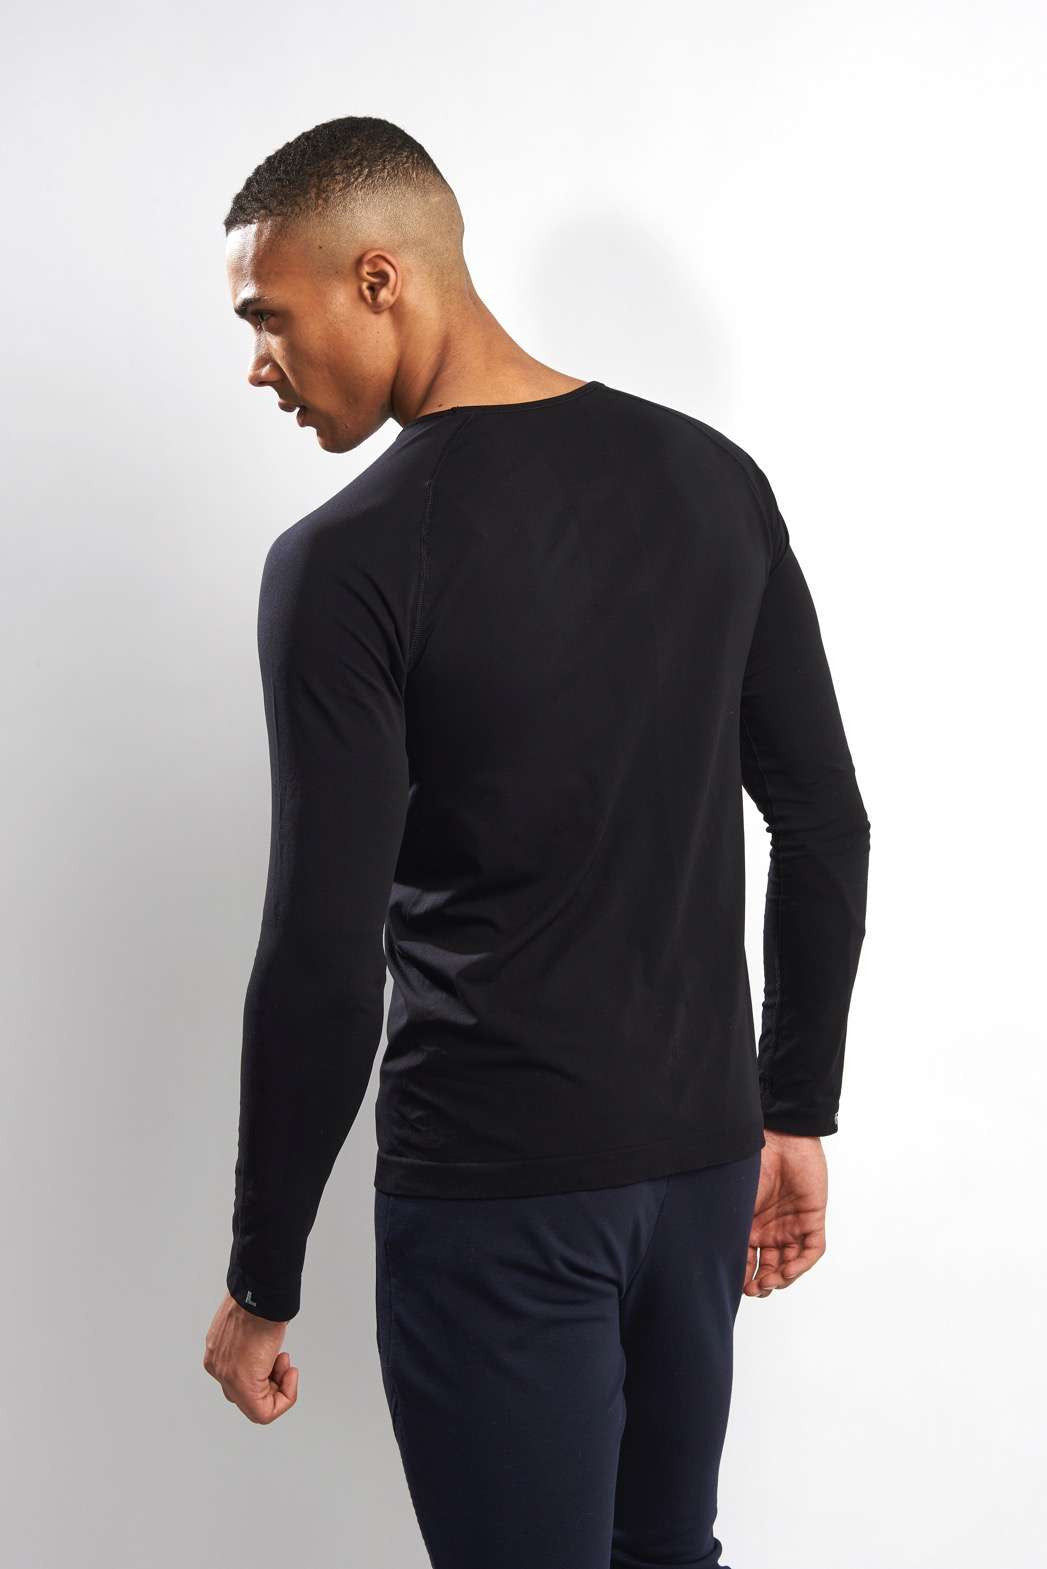 Falke Long-sleeved Comfort Shirt - Black image 2 - The Sports Edit